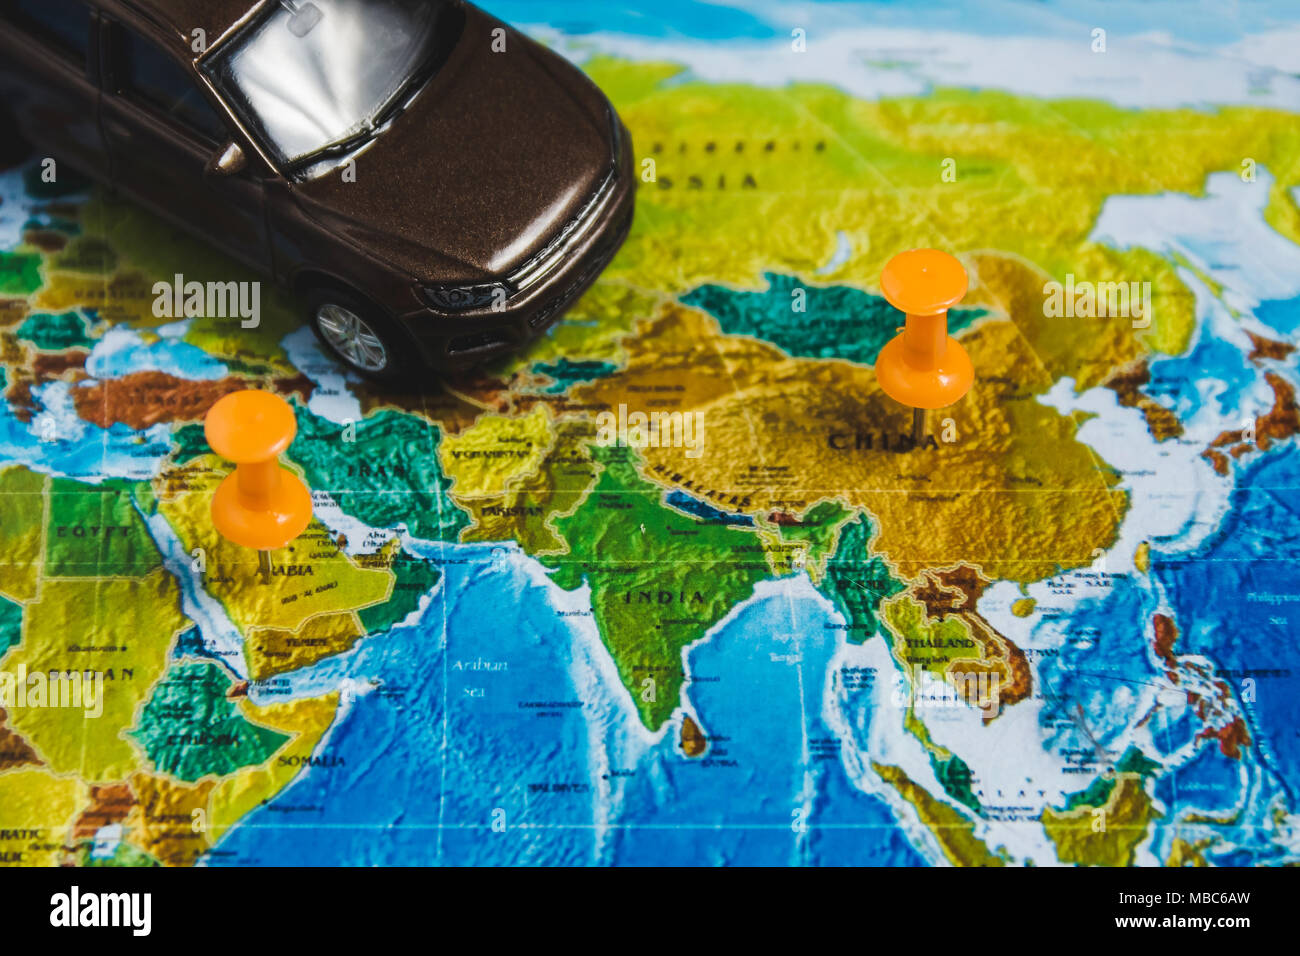 automotive travel destination points on world map indicated with colorful thumbtacks and shallow depth of field